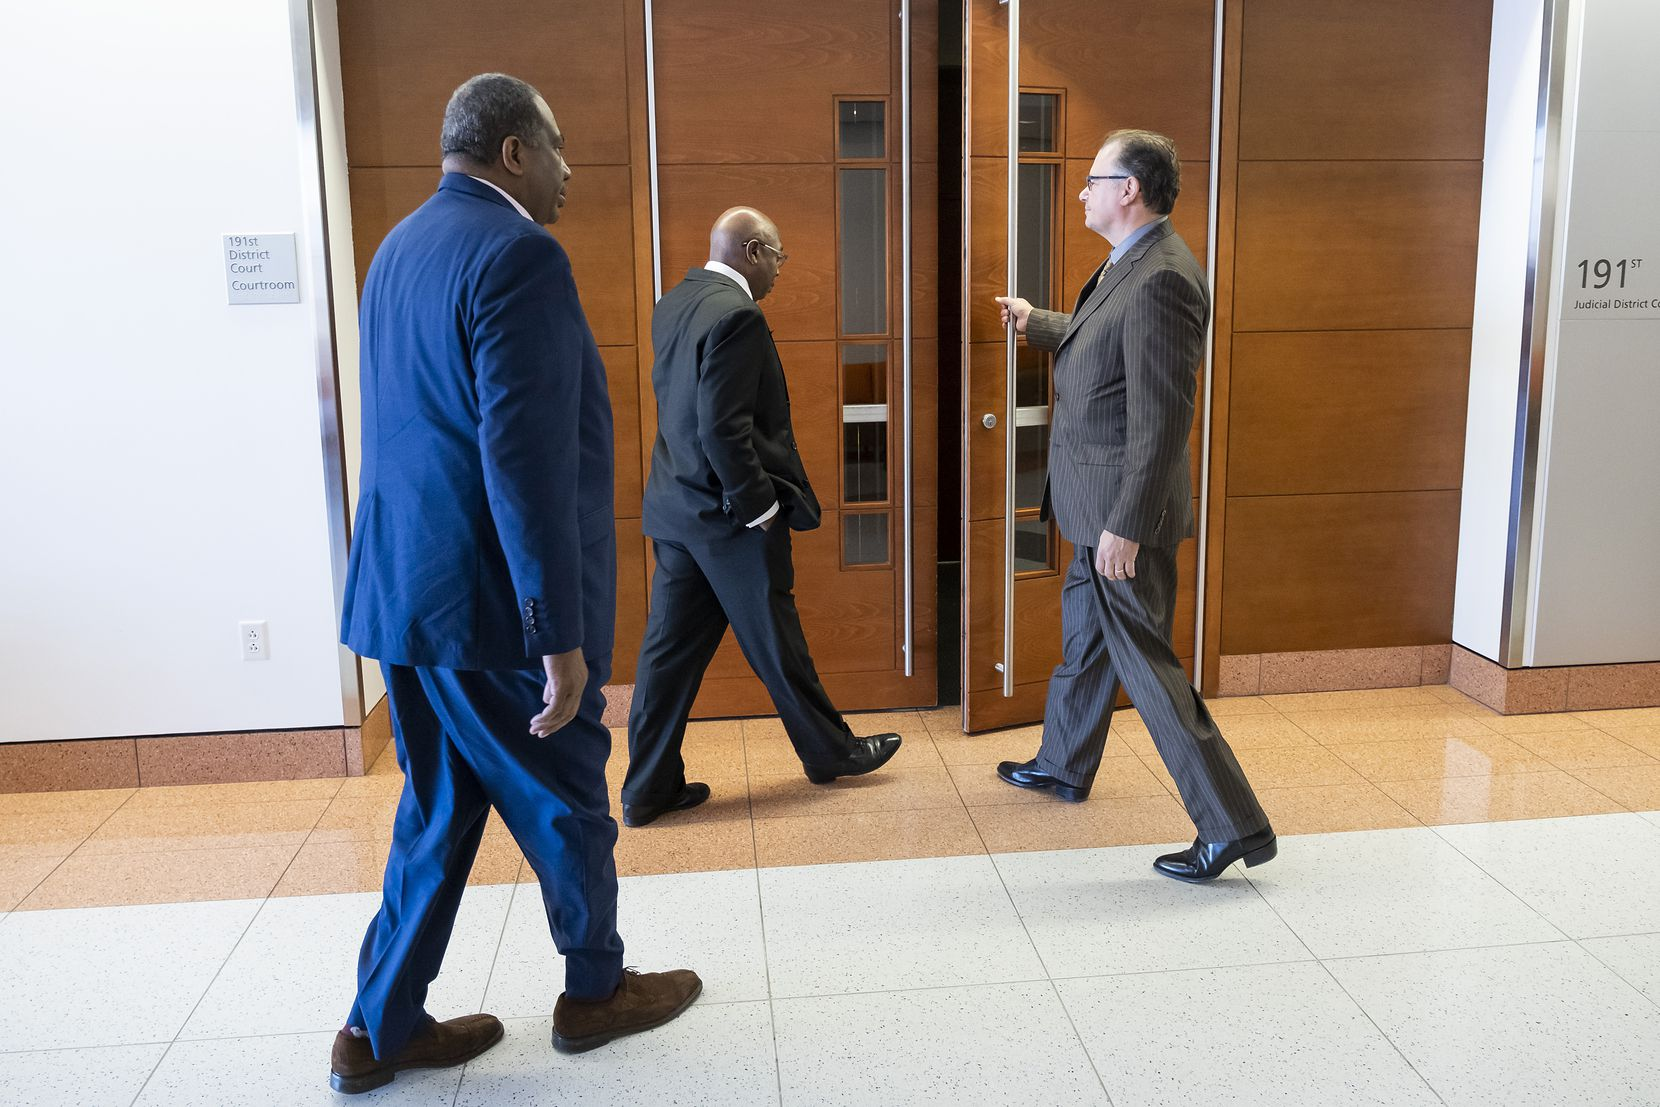 Chris Caso, interim Dallas city attorney (right), holds the door for Dallas council member Tennell Atkins and State Sen. Royce West to enter a hearing at Judge Gena Slaughter's courtroom at the  George L. Allen, Sr. Courts Building on Thursday, March 21, 2019. A hearing was held Thursday on the fate of what has become known as Shingle Mountain in southeast Dallas.